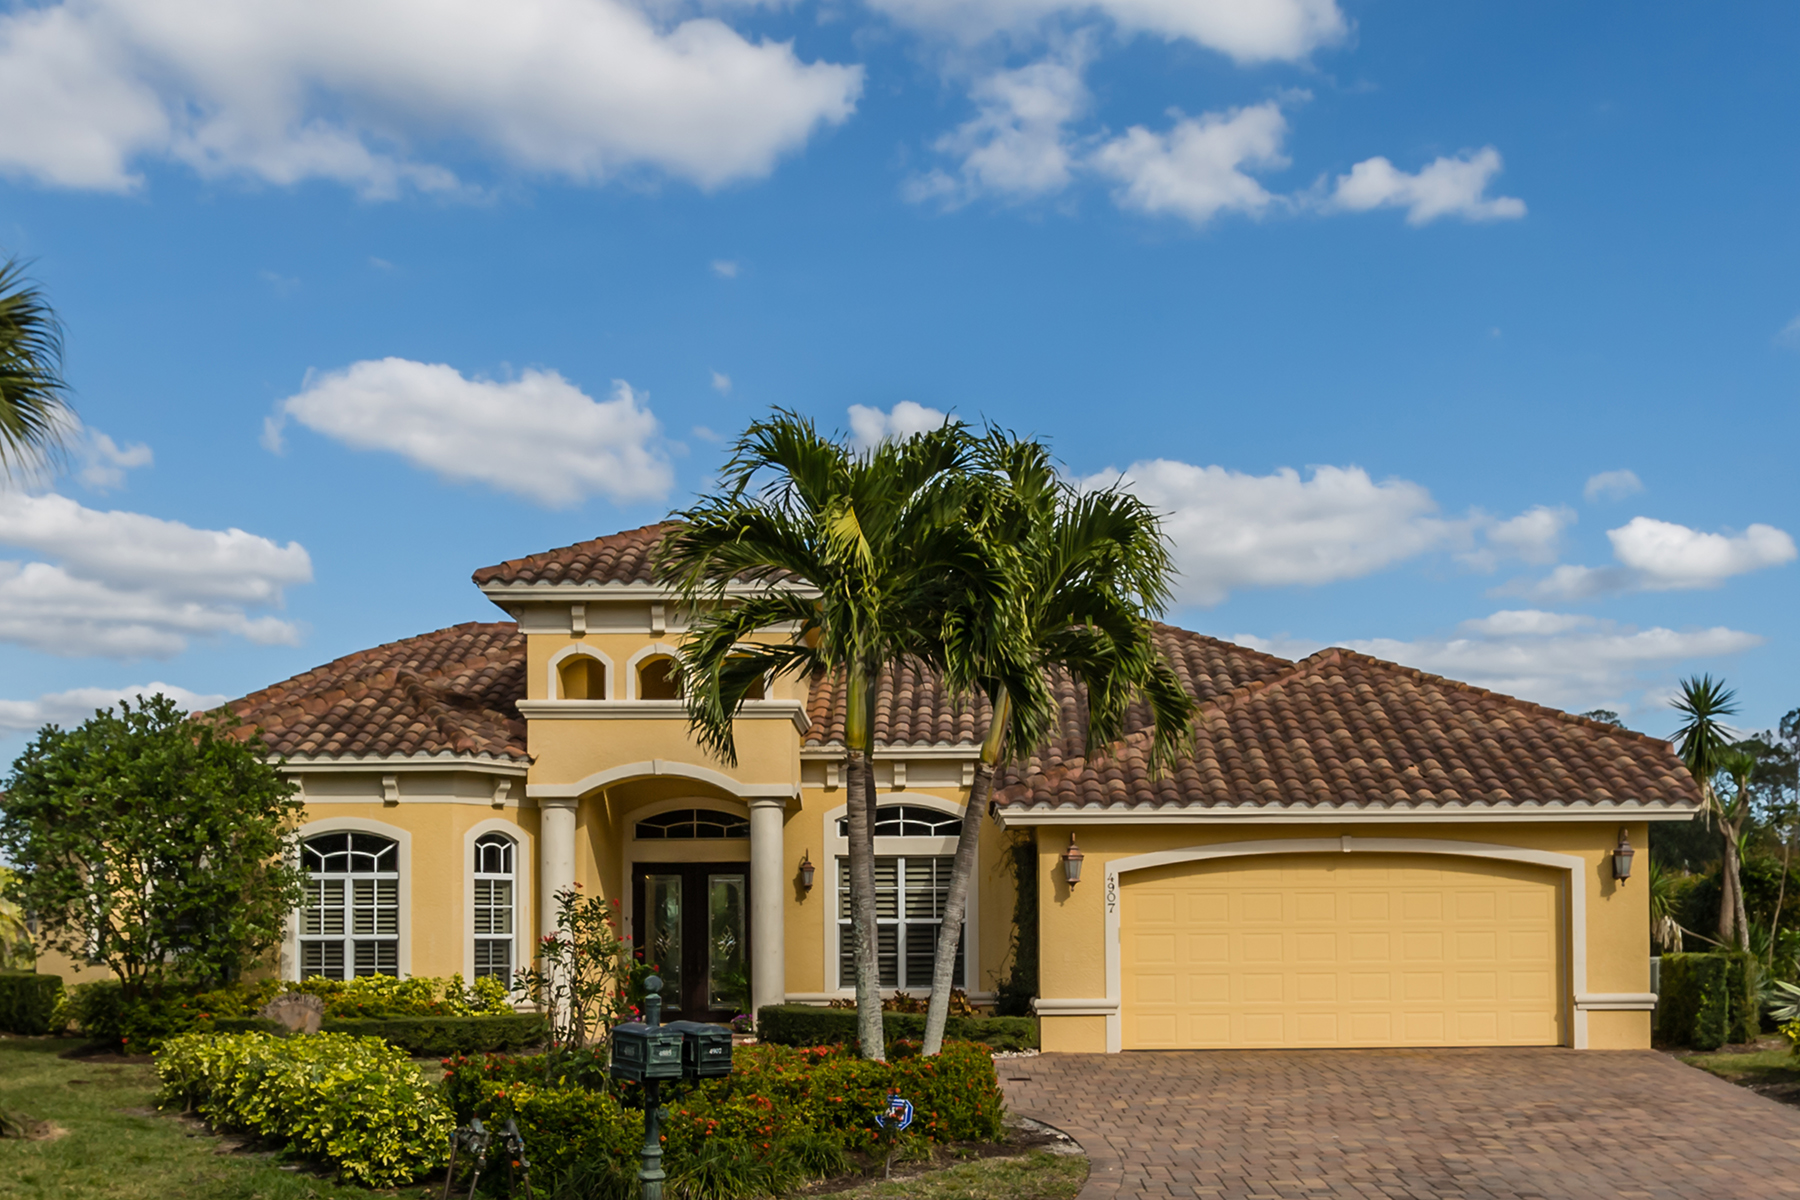 Single Family Home for Sale at LONGSHORE LAKE 4907 Shearwater Ln, Naples, Florida, 34119 United States